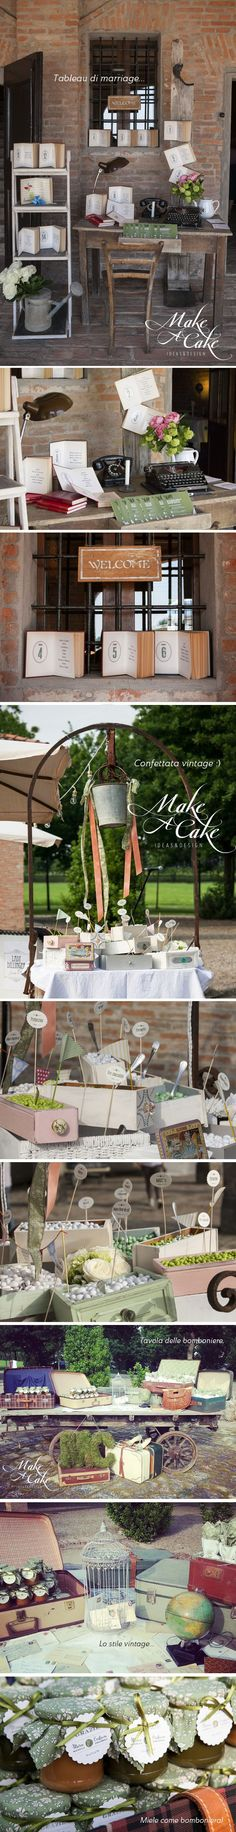 wedding details table customized green wedding inspiration favors you can find it at www.makeacake.it